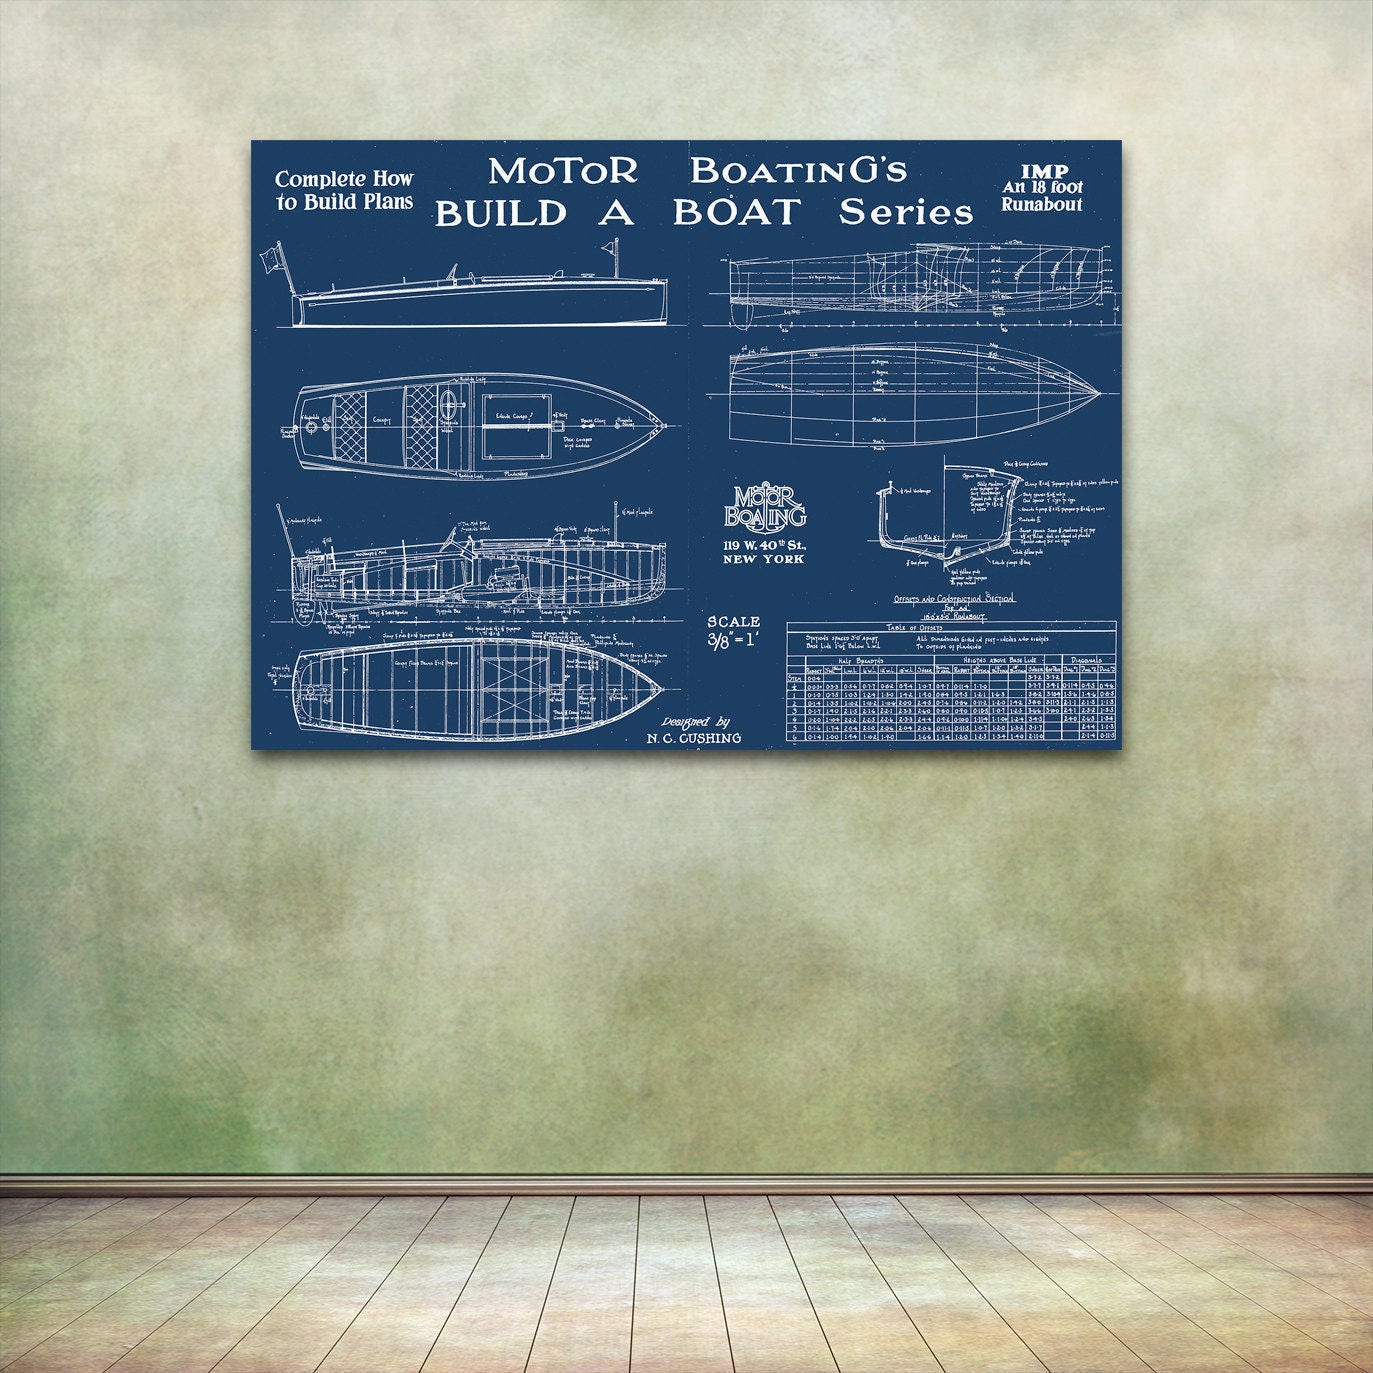 Print of vintage imp boat blueprint from motor boatings build a print of vintage imp boat blueprint from motor boatings build a boat series on your choice of matte paper photo paper or canvas malvernweather Image collections